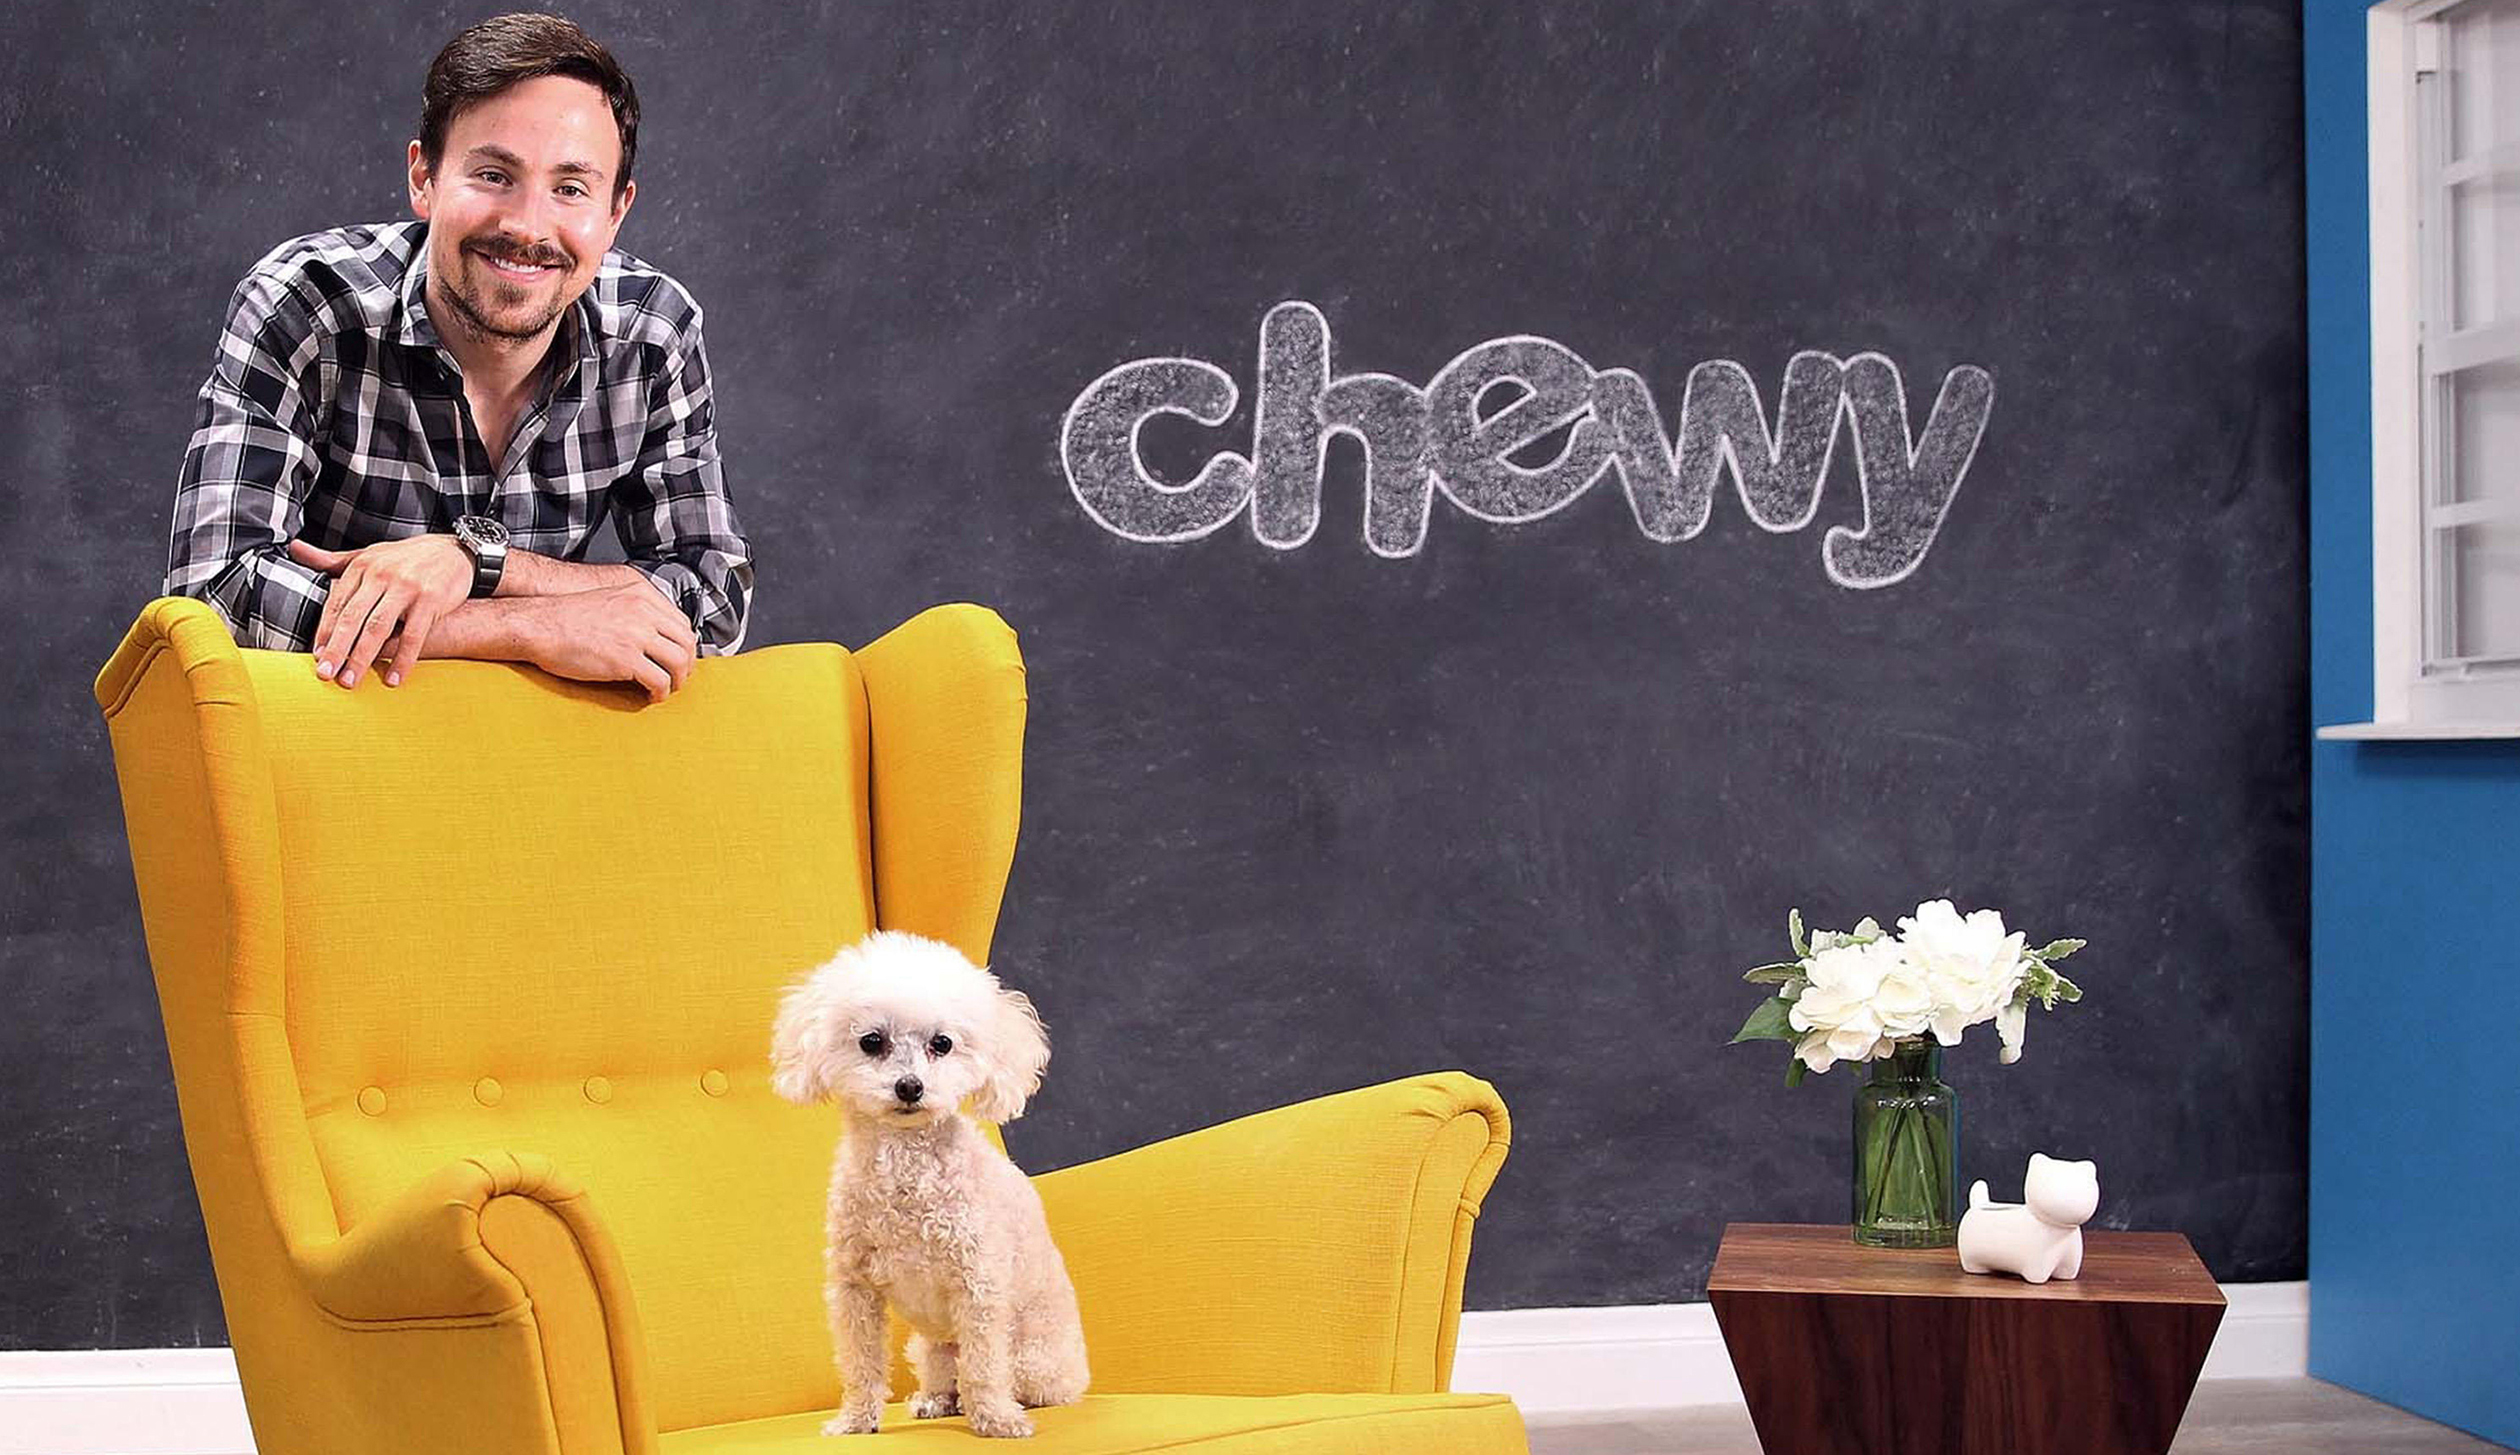 Dania Beach, USA. 01st Feb, 2017. Ryan Cohen, CEO of Chewy.com, and his poodle Tylee at the company's photo studio in Dania Beach, Fla. Credit: C.M. Guerrero/Miami Herald/TNS/Alamy Live News